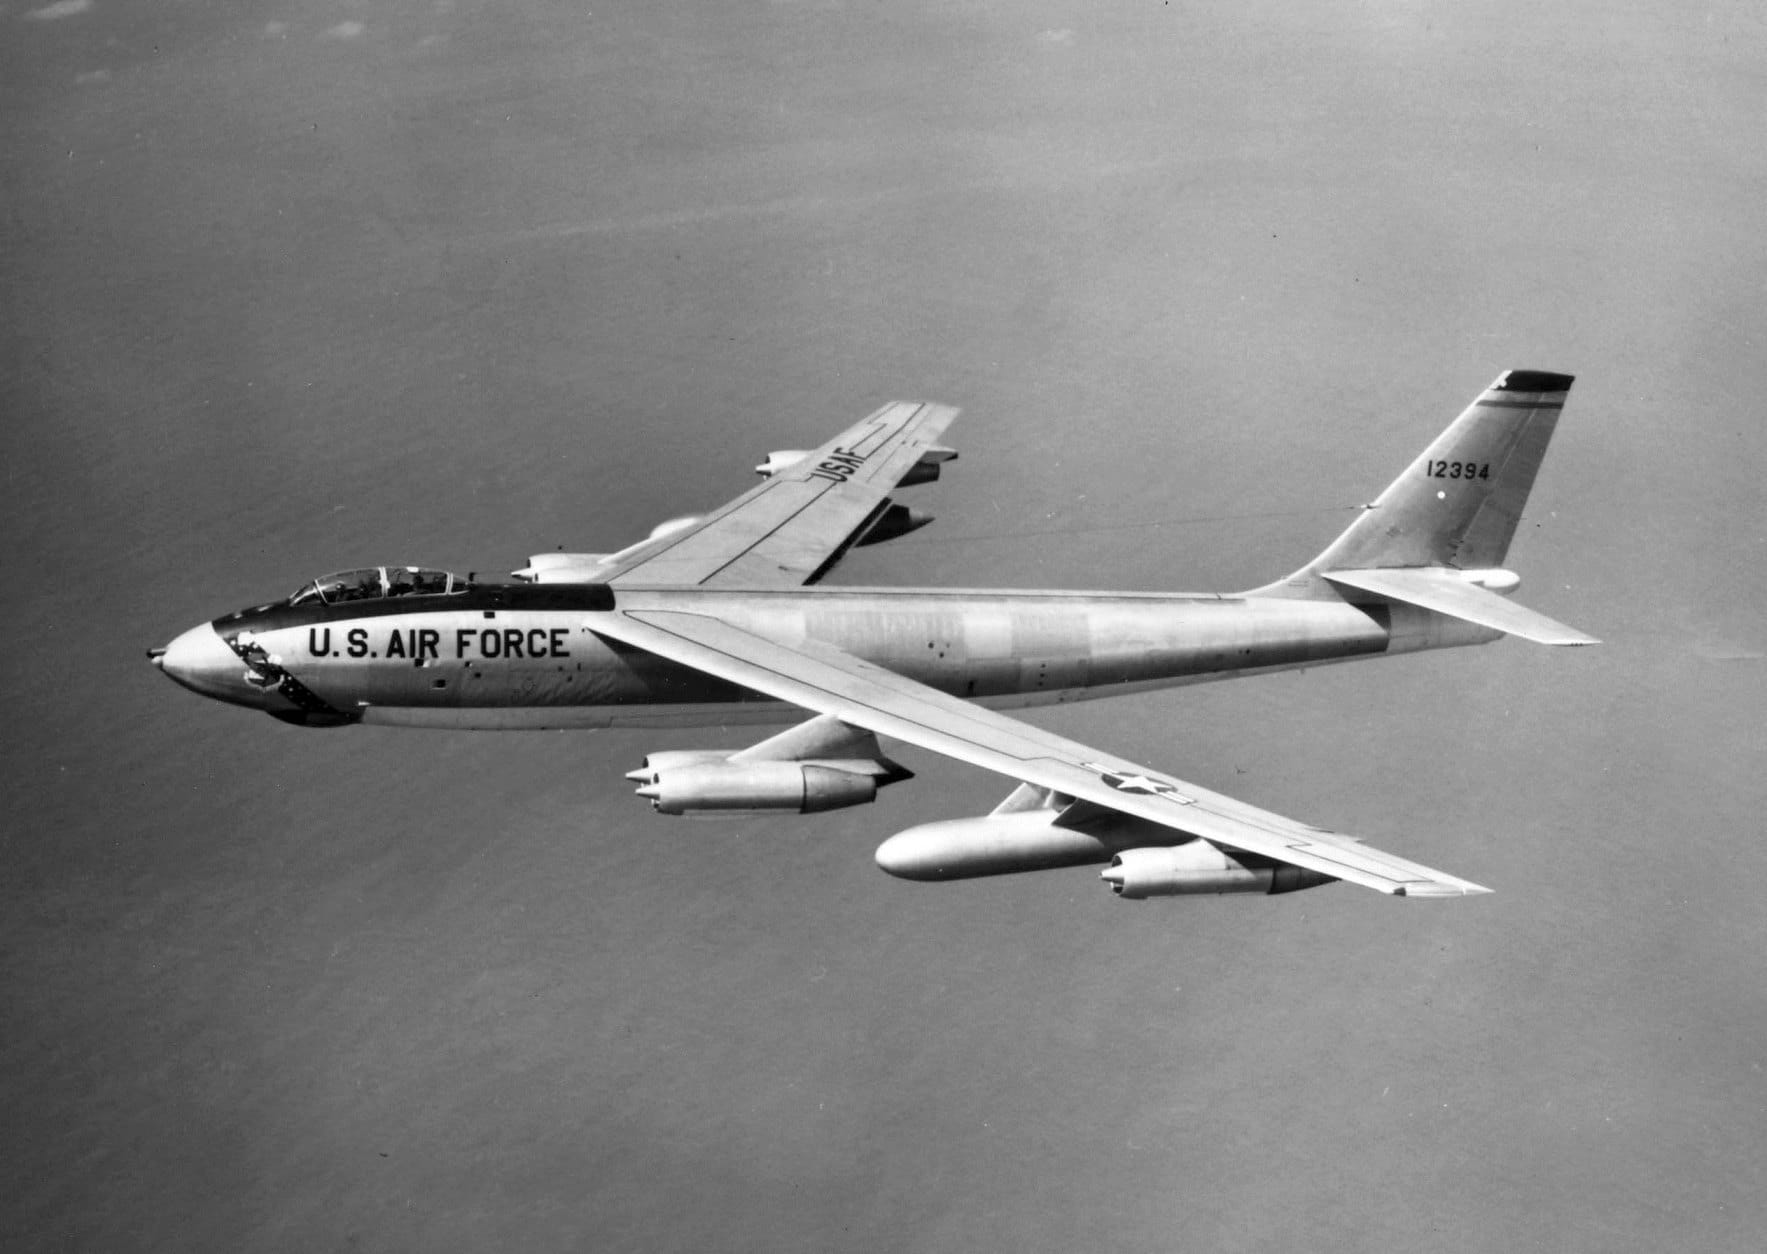 Here's The Proof: The B-47's Combat Maneuvers Were More Like A Fighter Than A Bomber